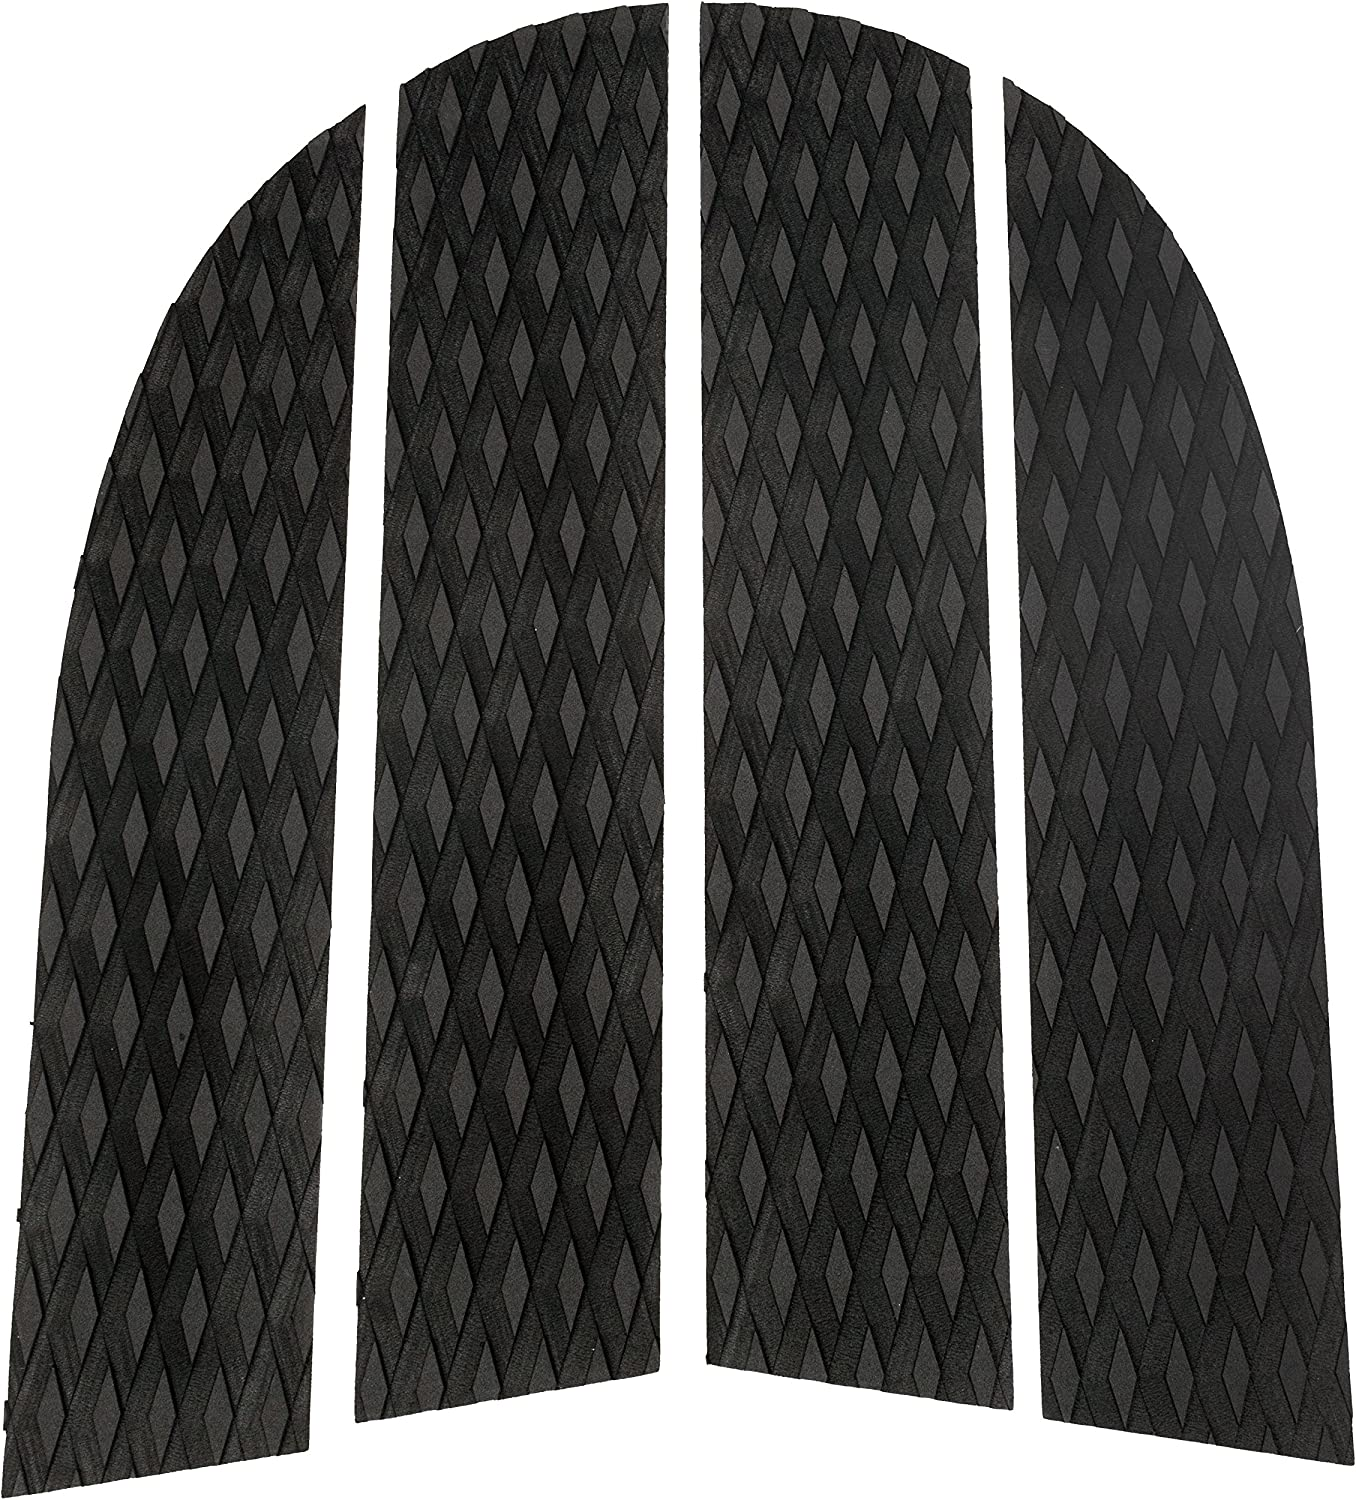 SUP-Now Dog Paddleboard Traction Pad with 3M Adhesive